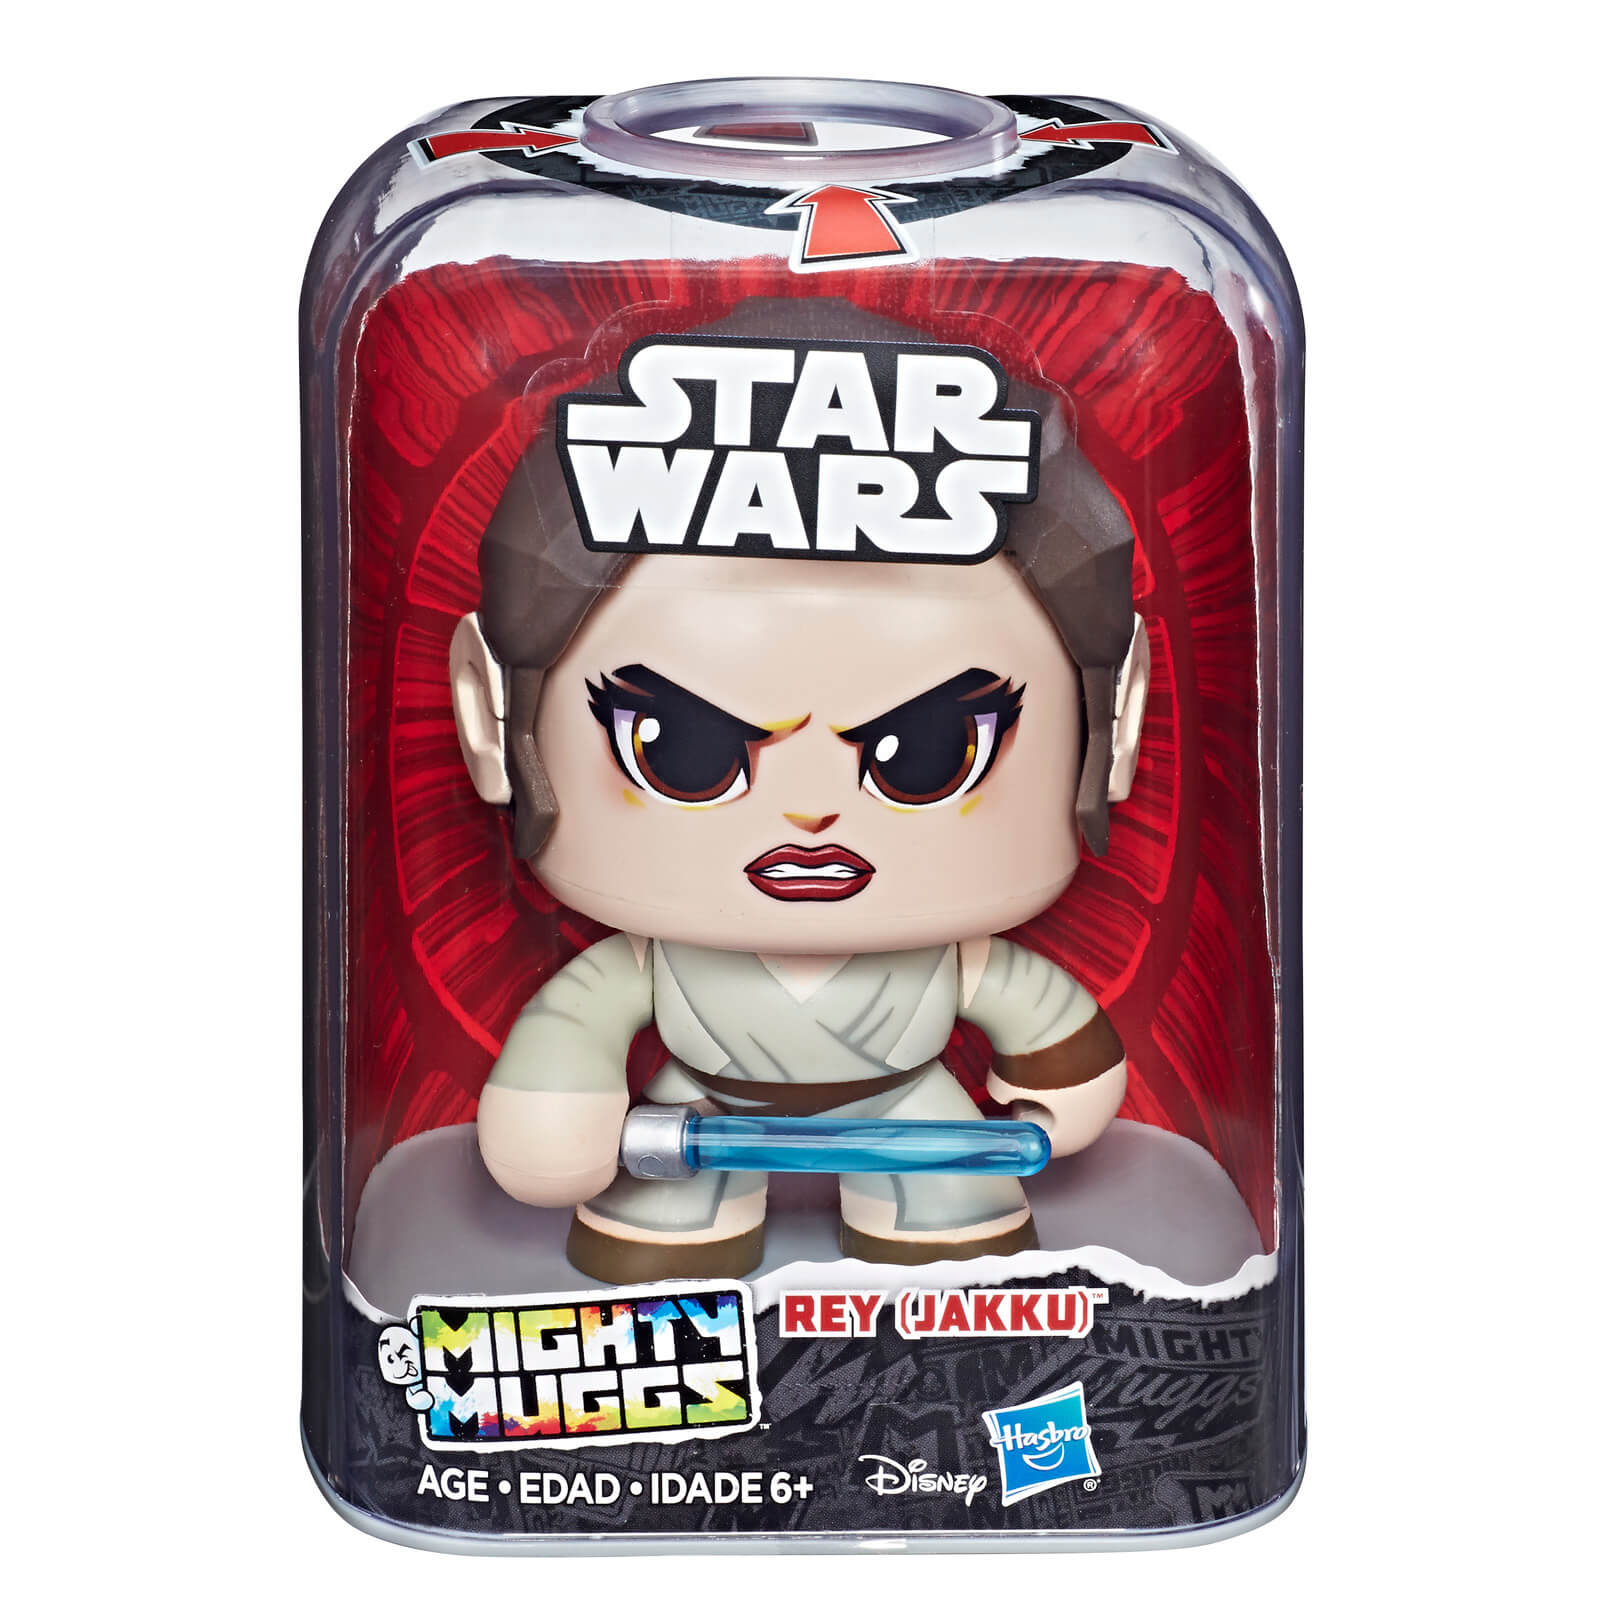 Star Wars Episode 7 Mighty Muggs - Rey